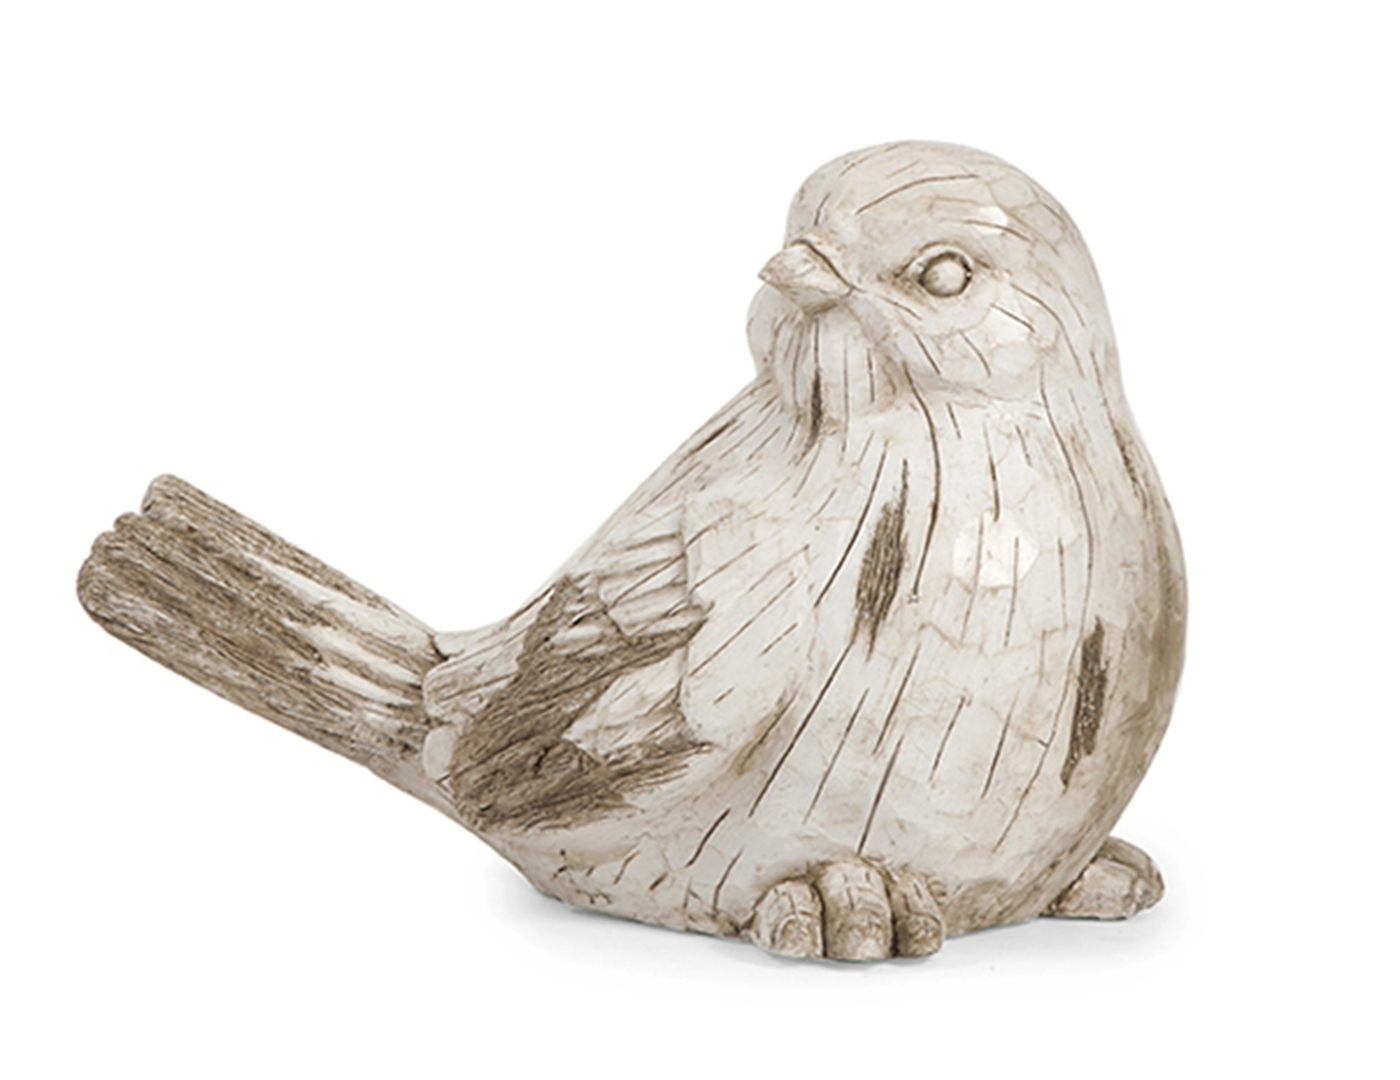 Aged White Bird Sculpture